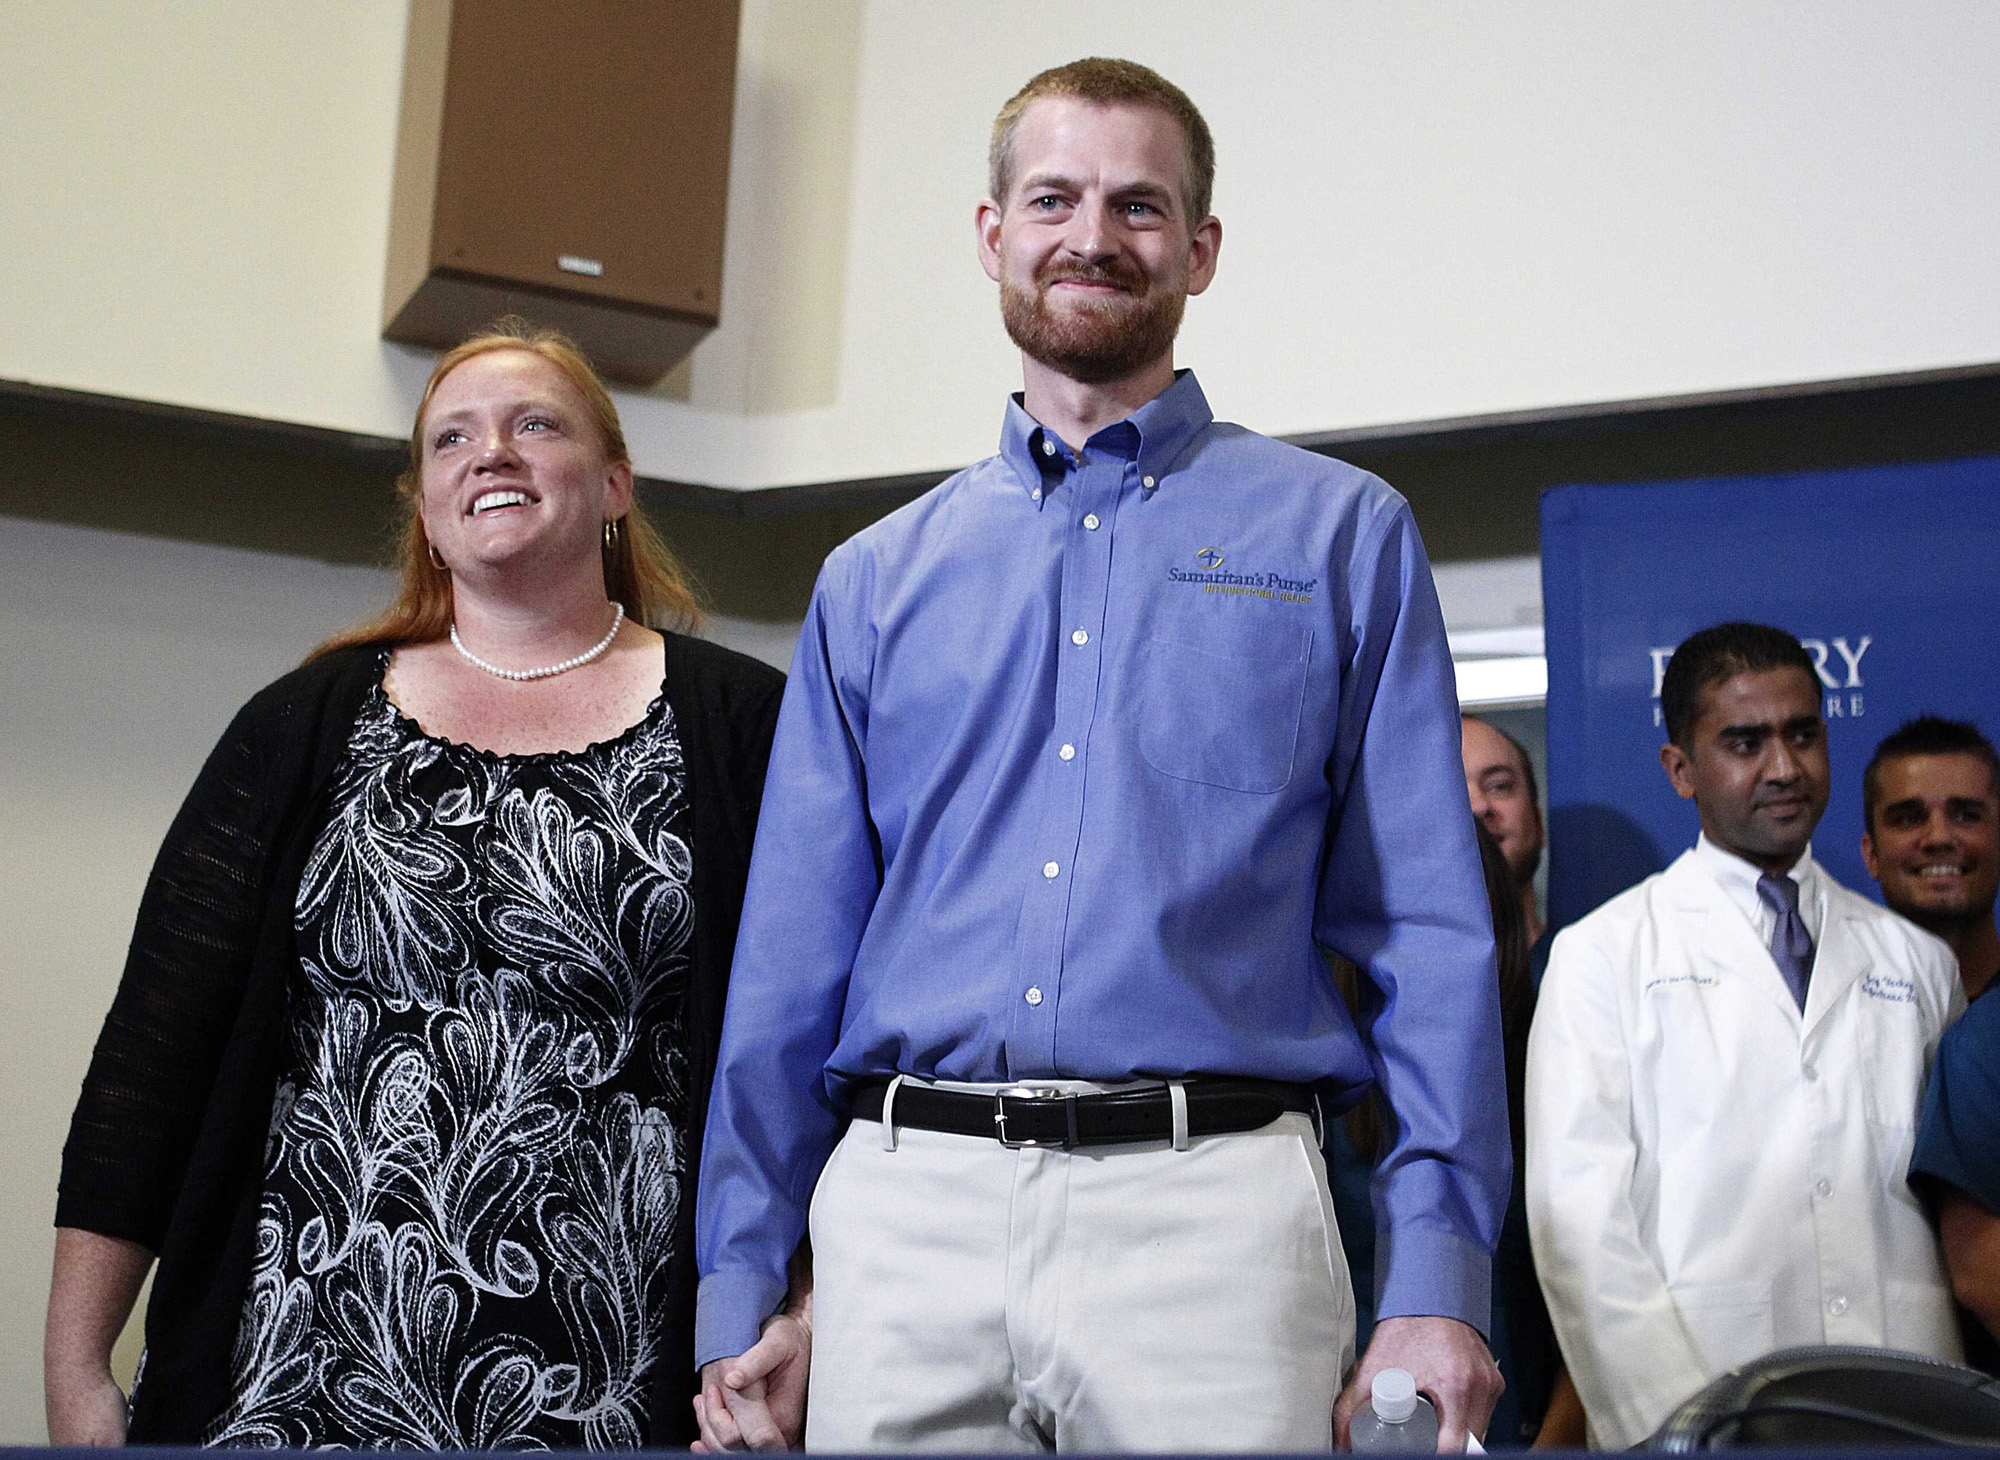 Dr. Kent Brantly, who contracted the deadly Ebola virus, stands with wife Amber during a press conference at Emory University Hospital in Atlanta on Aug. 21, 2014